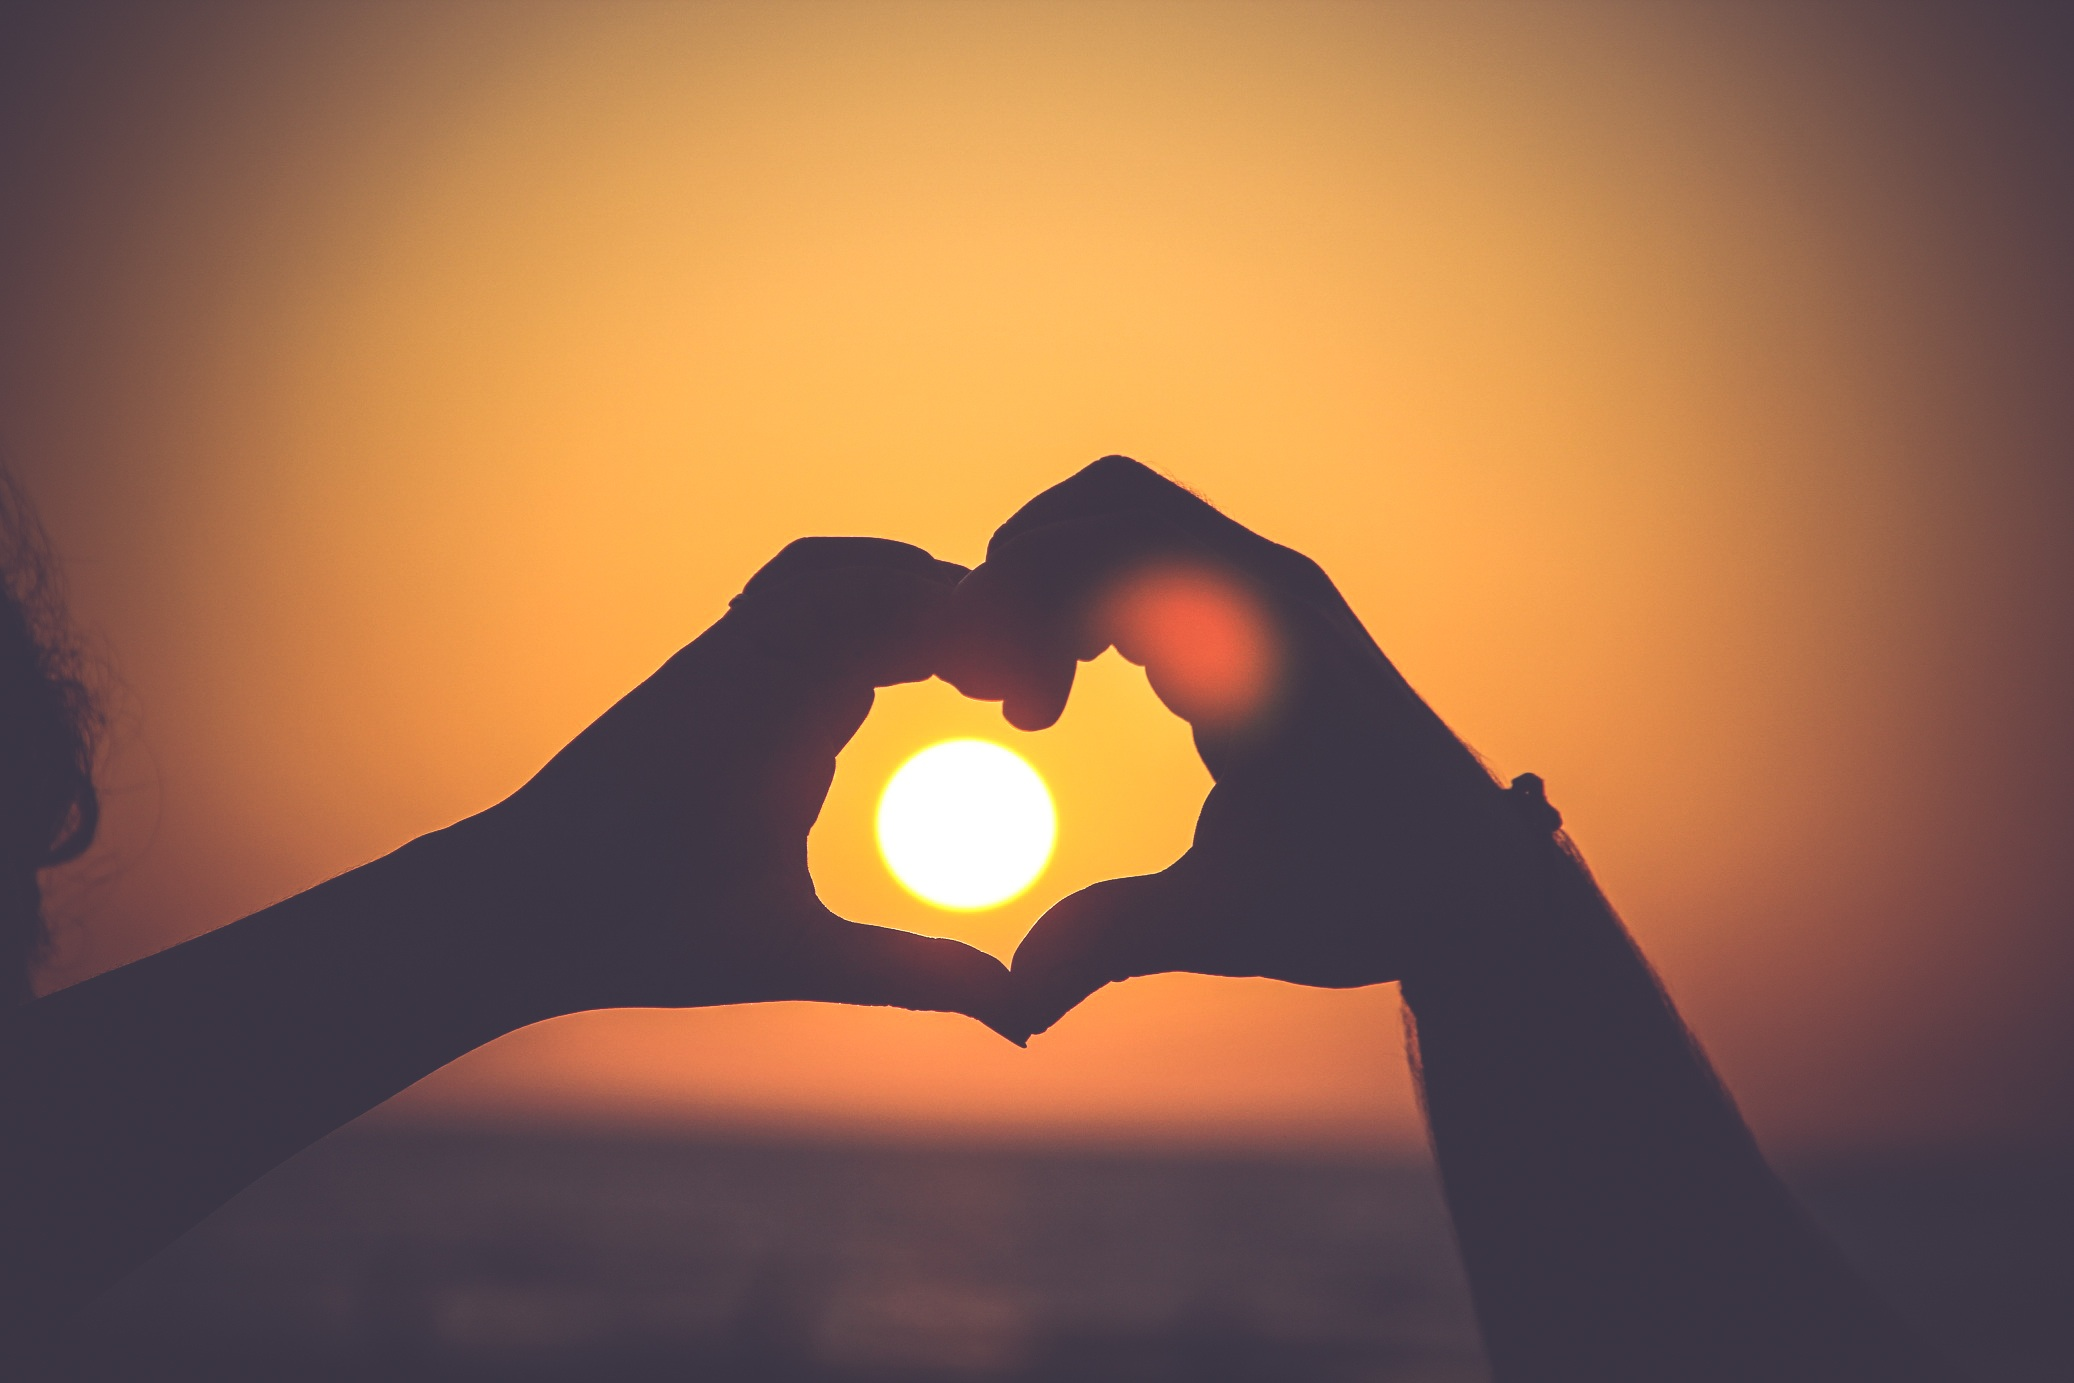 sunset_heart